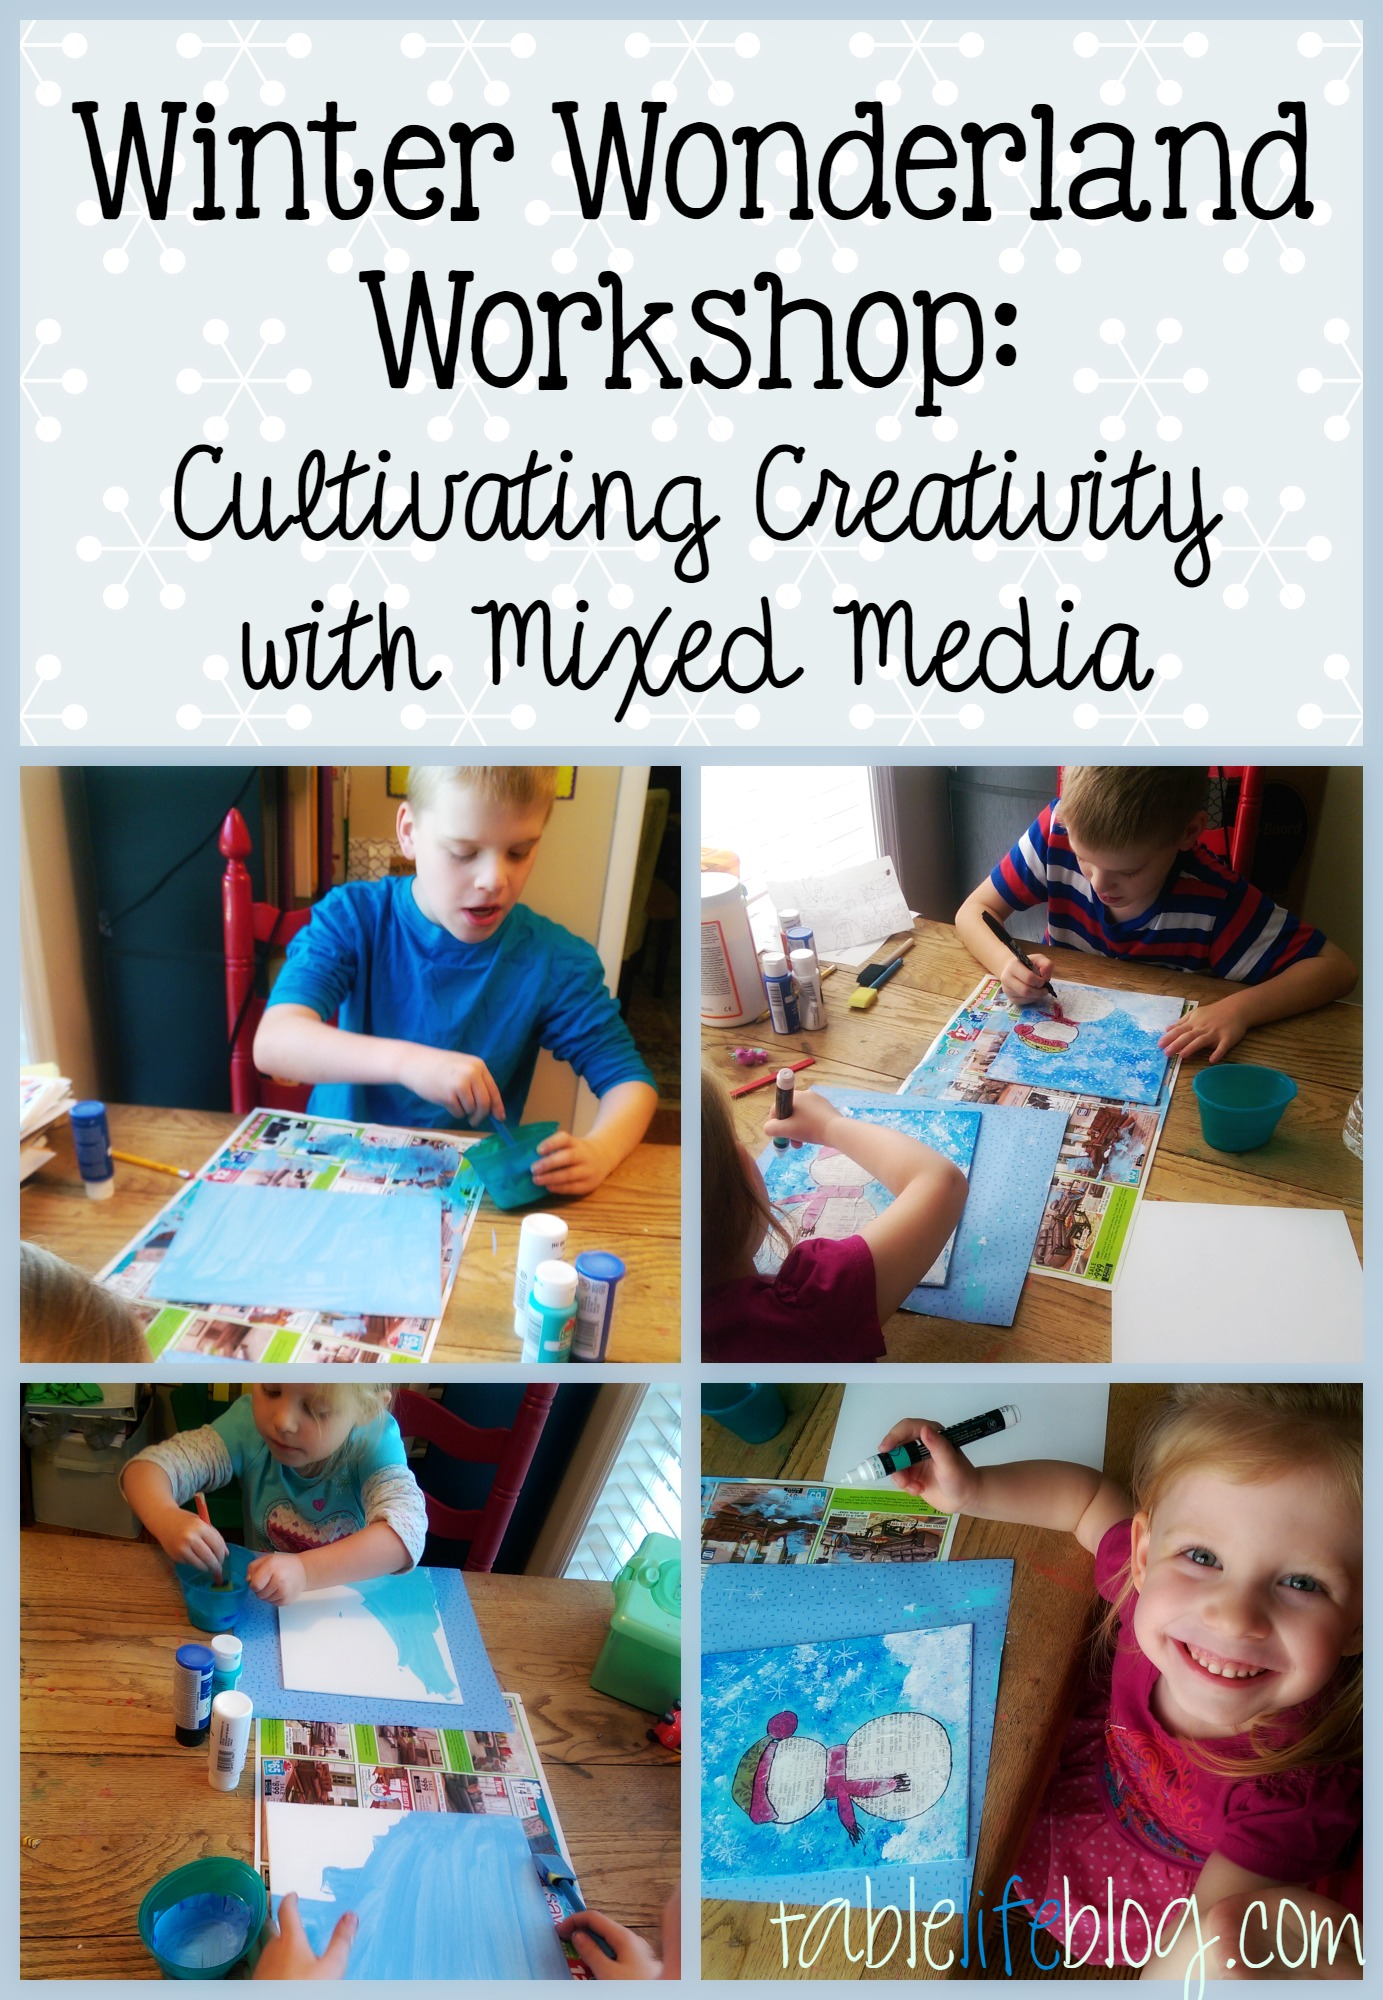 Winter Wonderland Workshop - Cultivating Creativity with Mixed Media